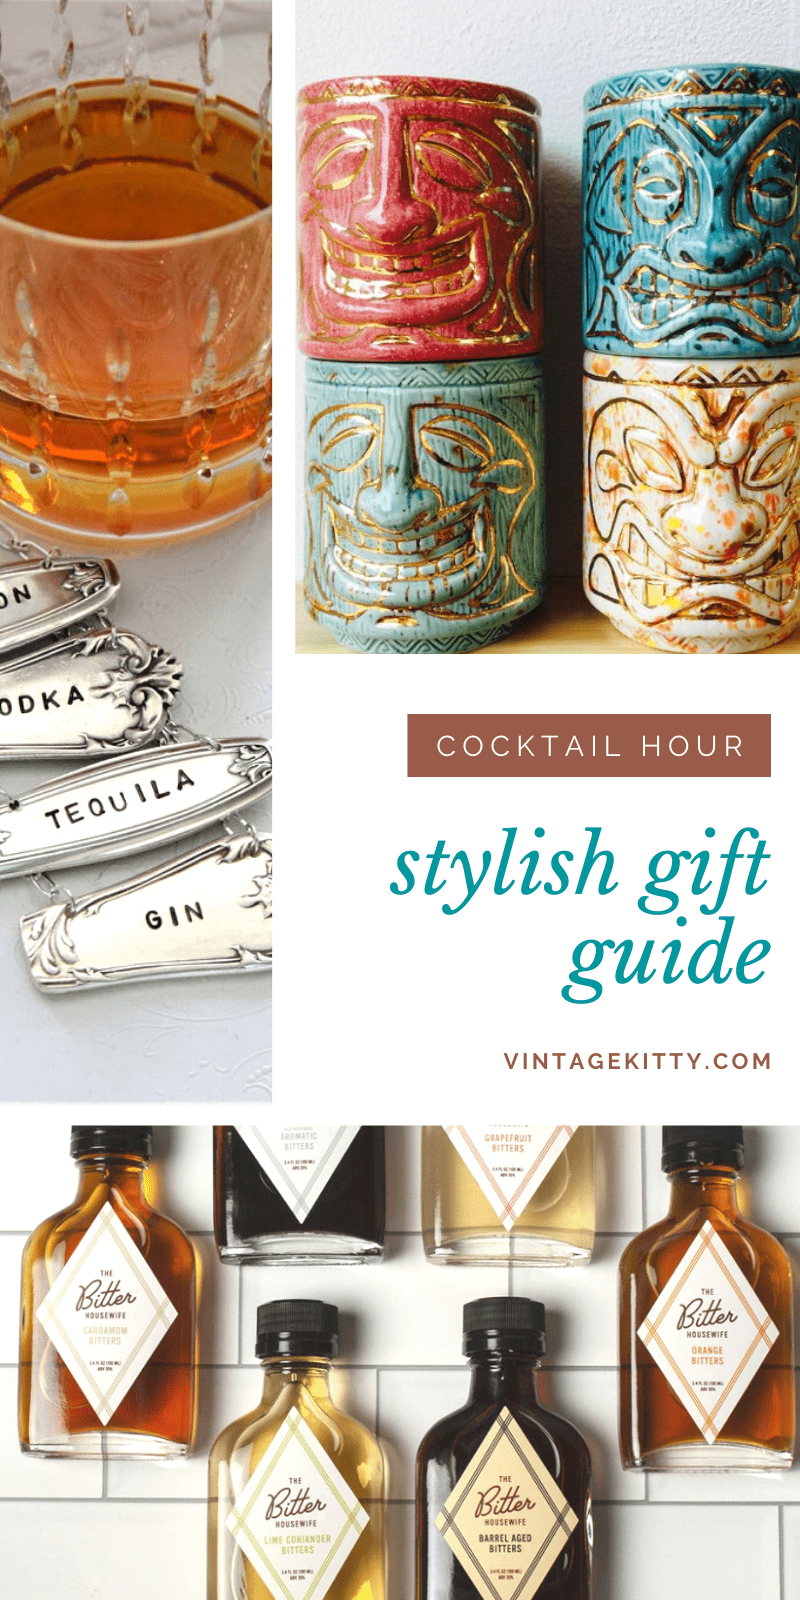 Cocktail Gifts 1 - Stylish Cocktail Gifts for the Home Bar